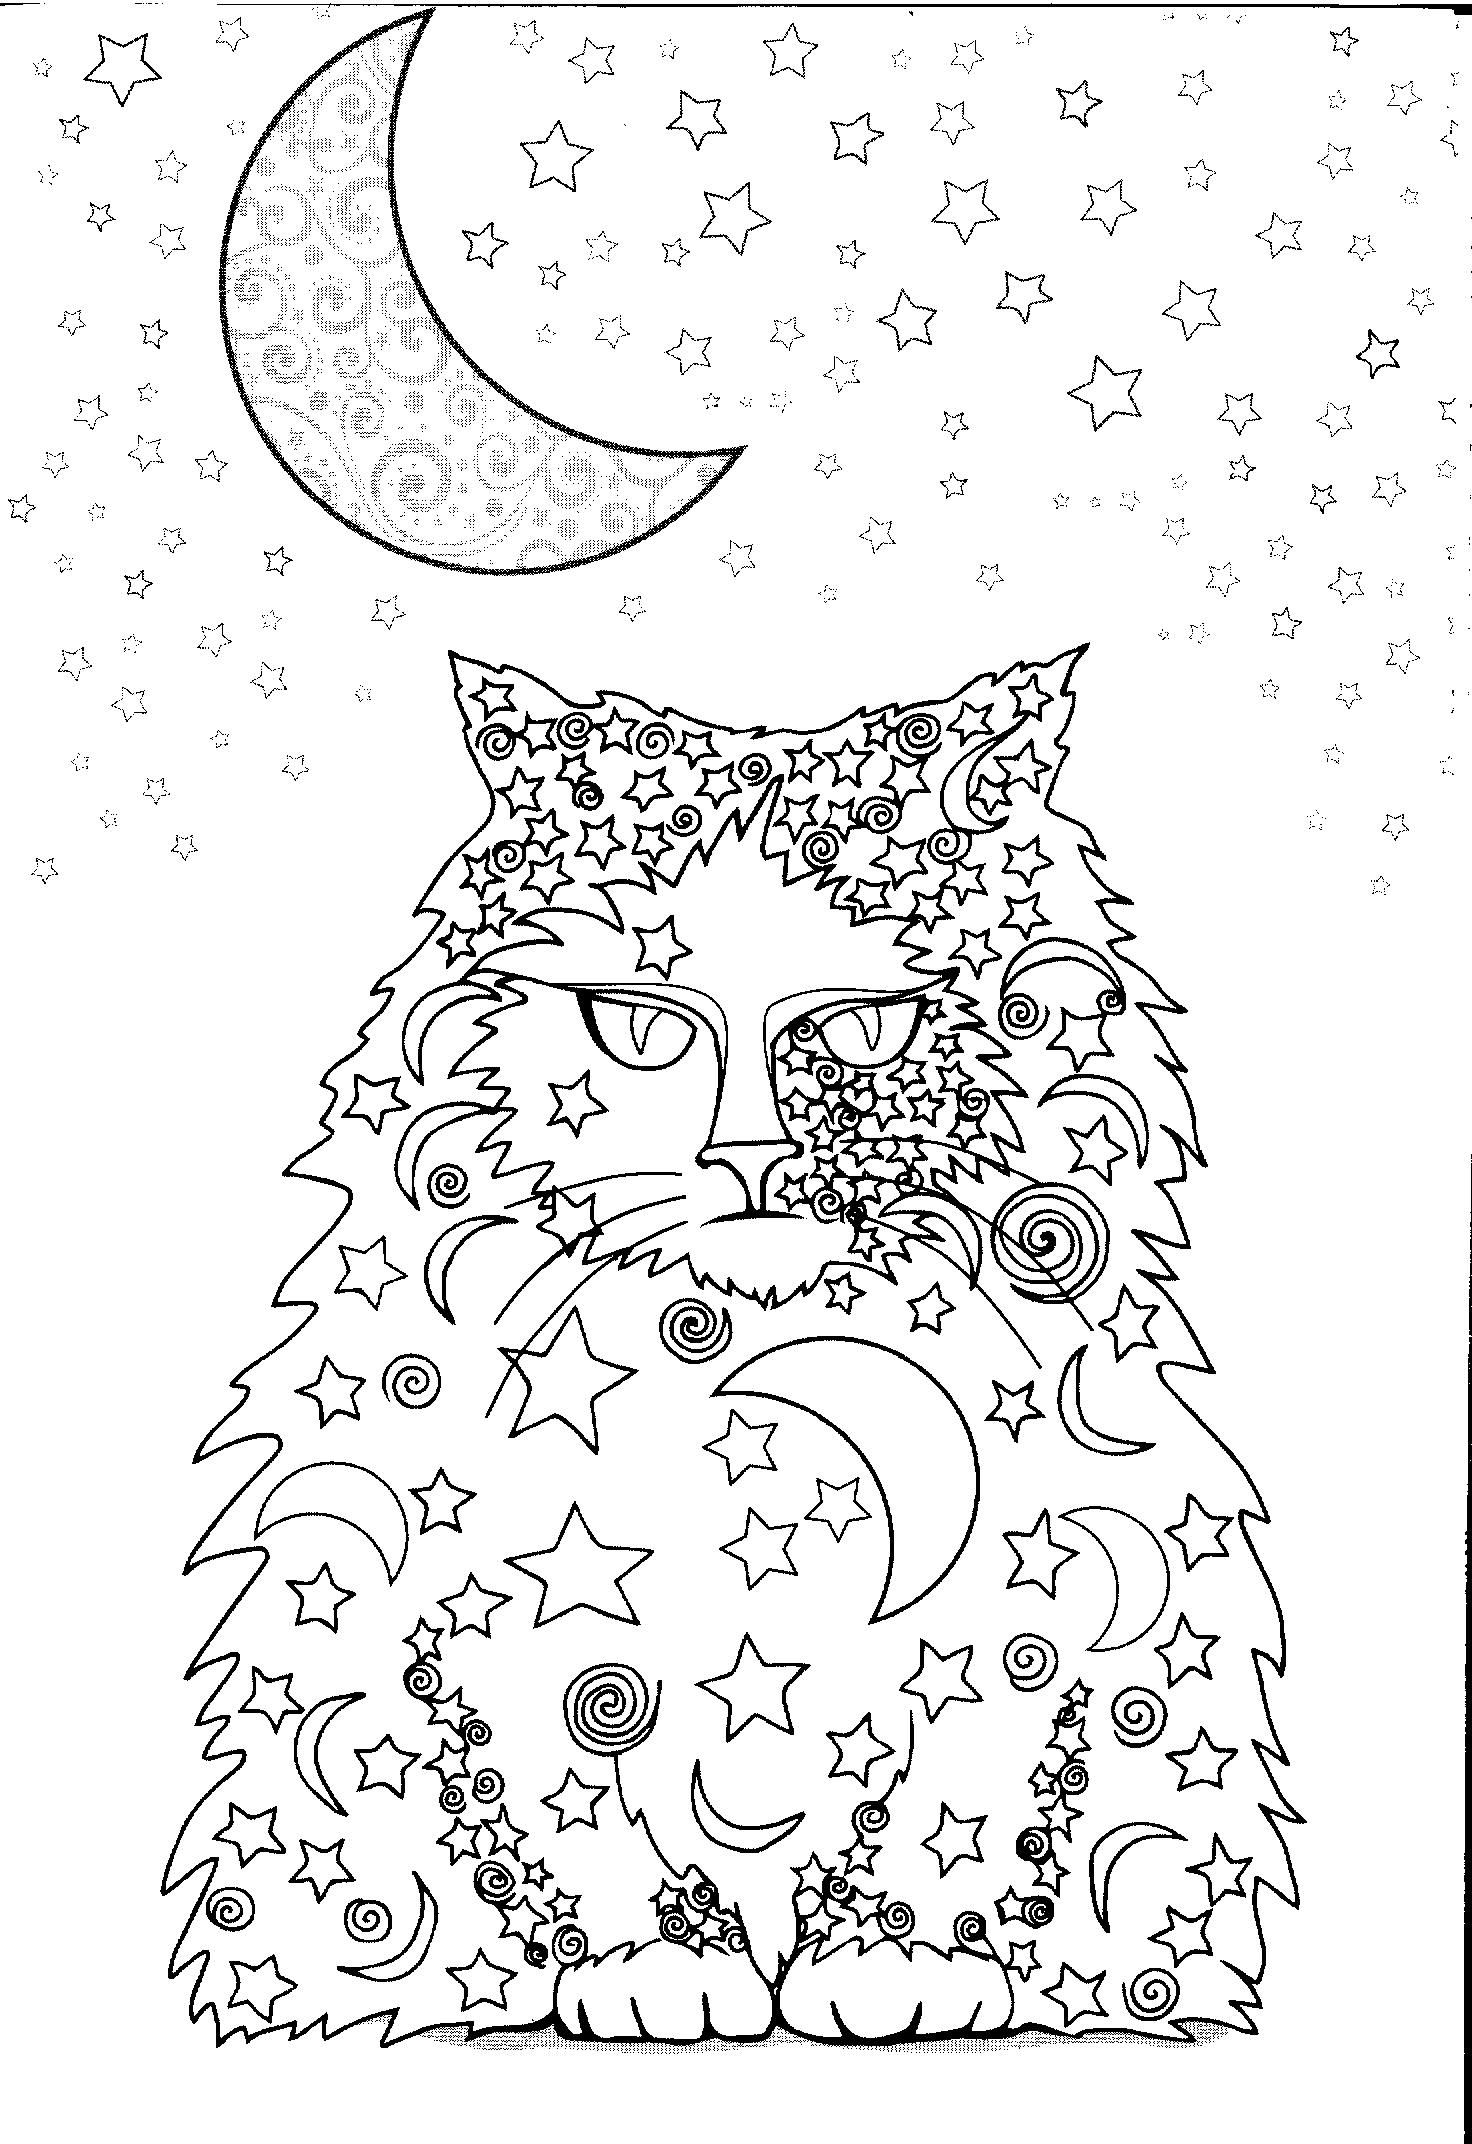 stevie nicks coloring pages awesome stevie nicks coloring pages bazetinha pages coloring stevie nicks